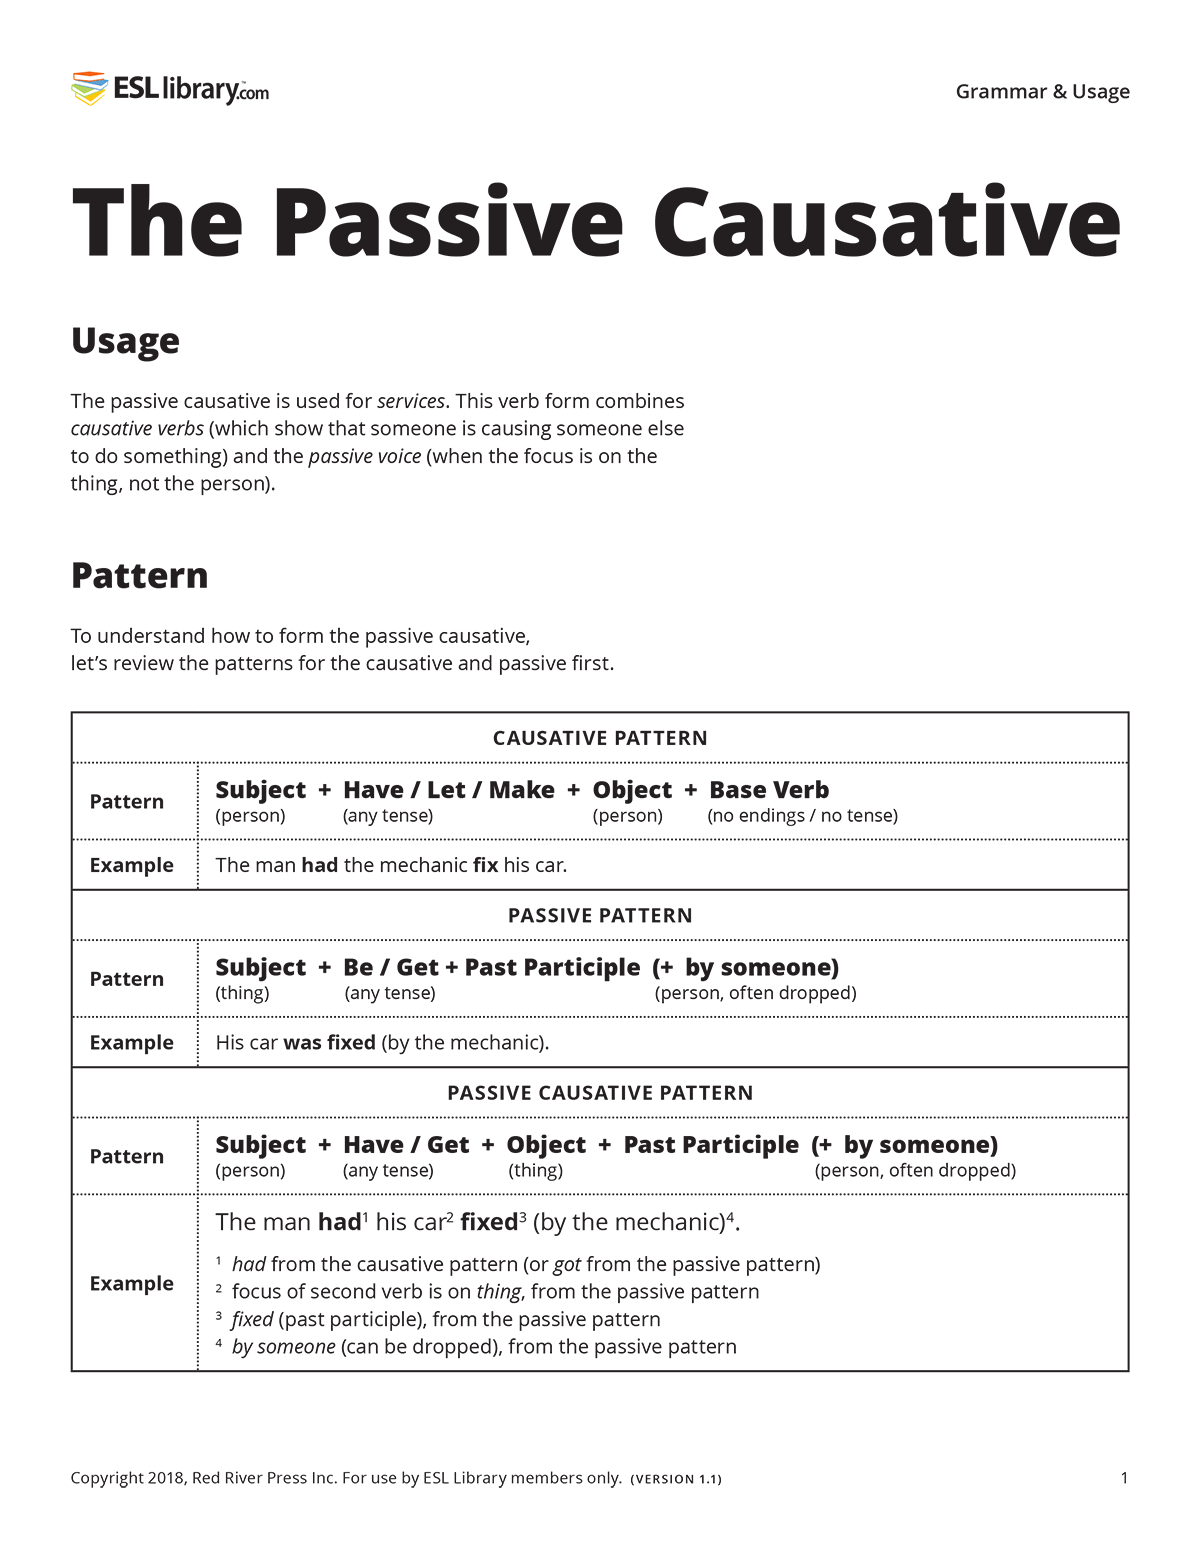 What is the passive causative?